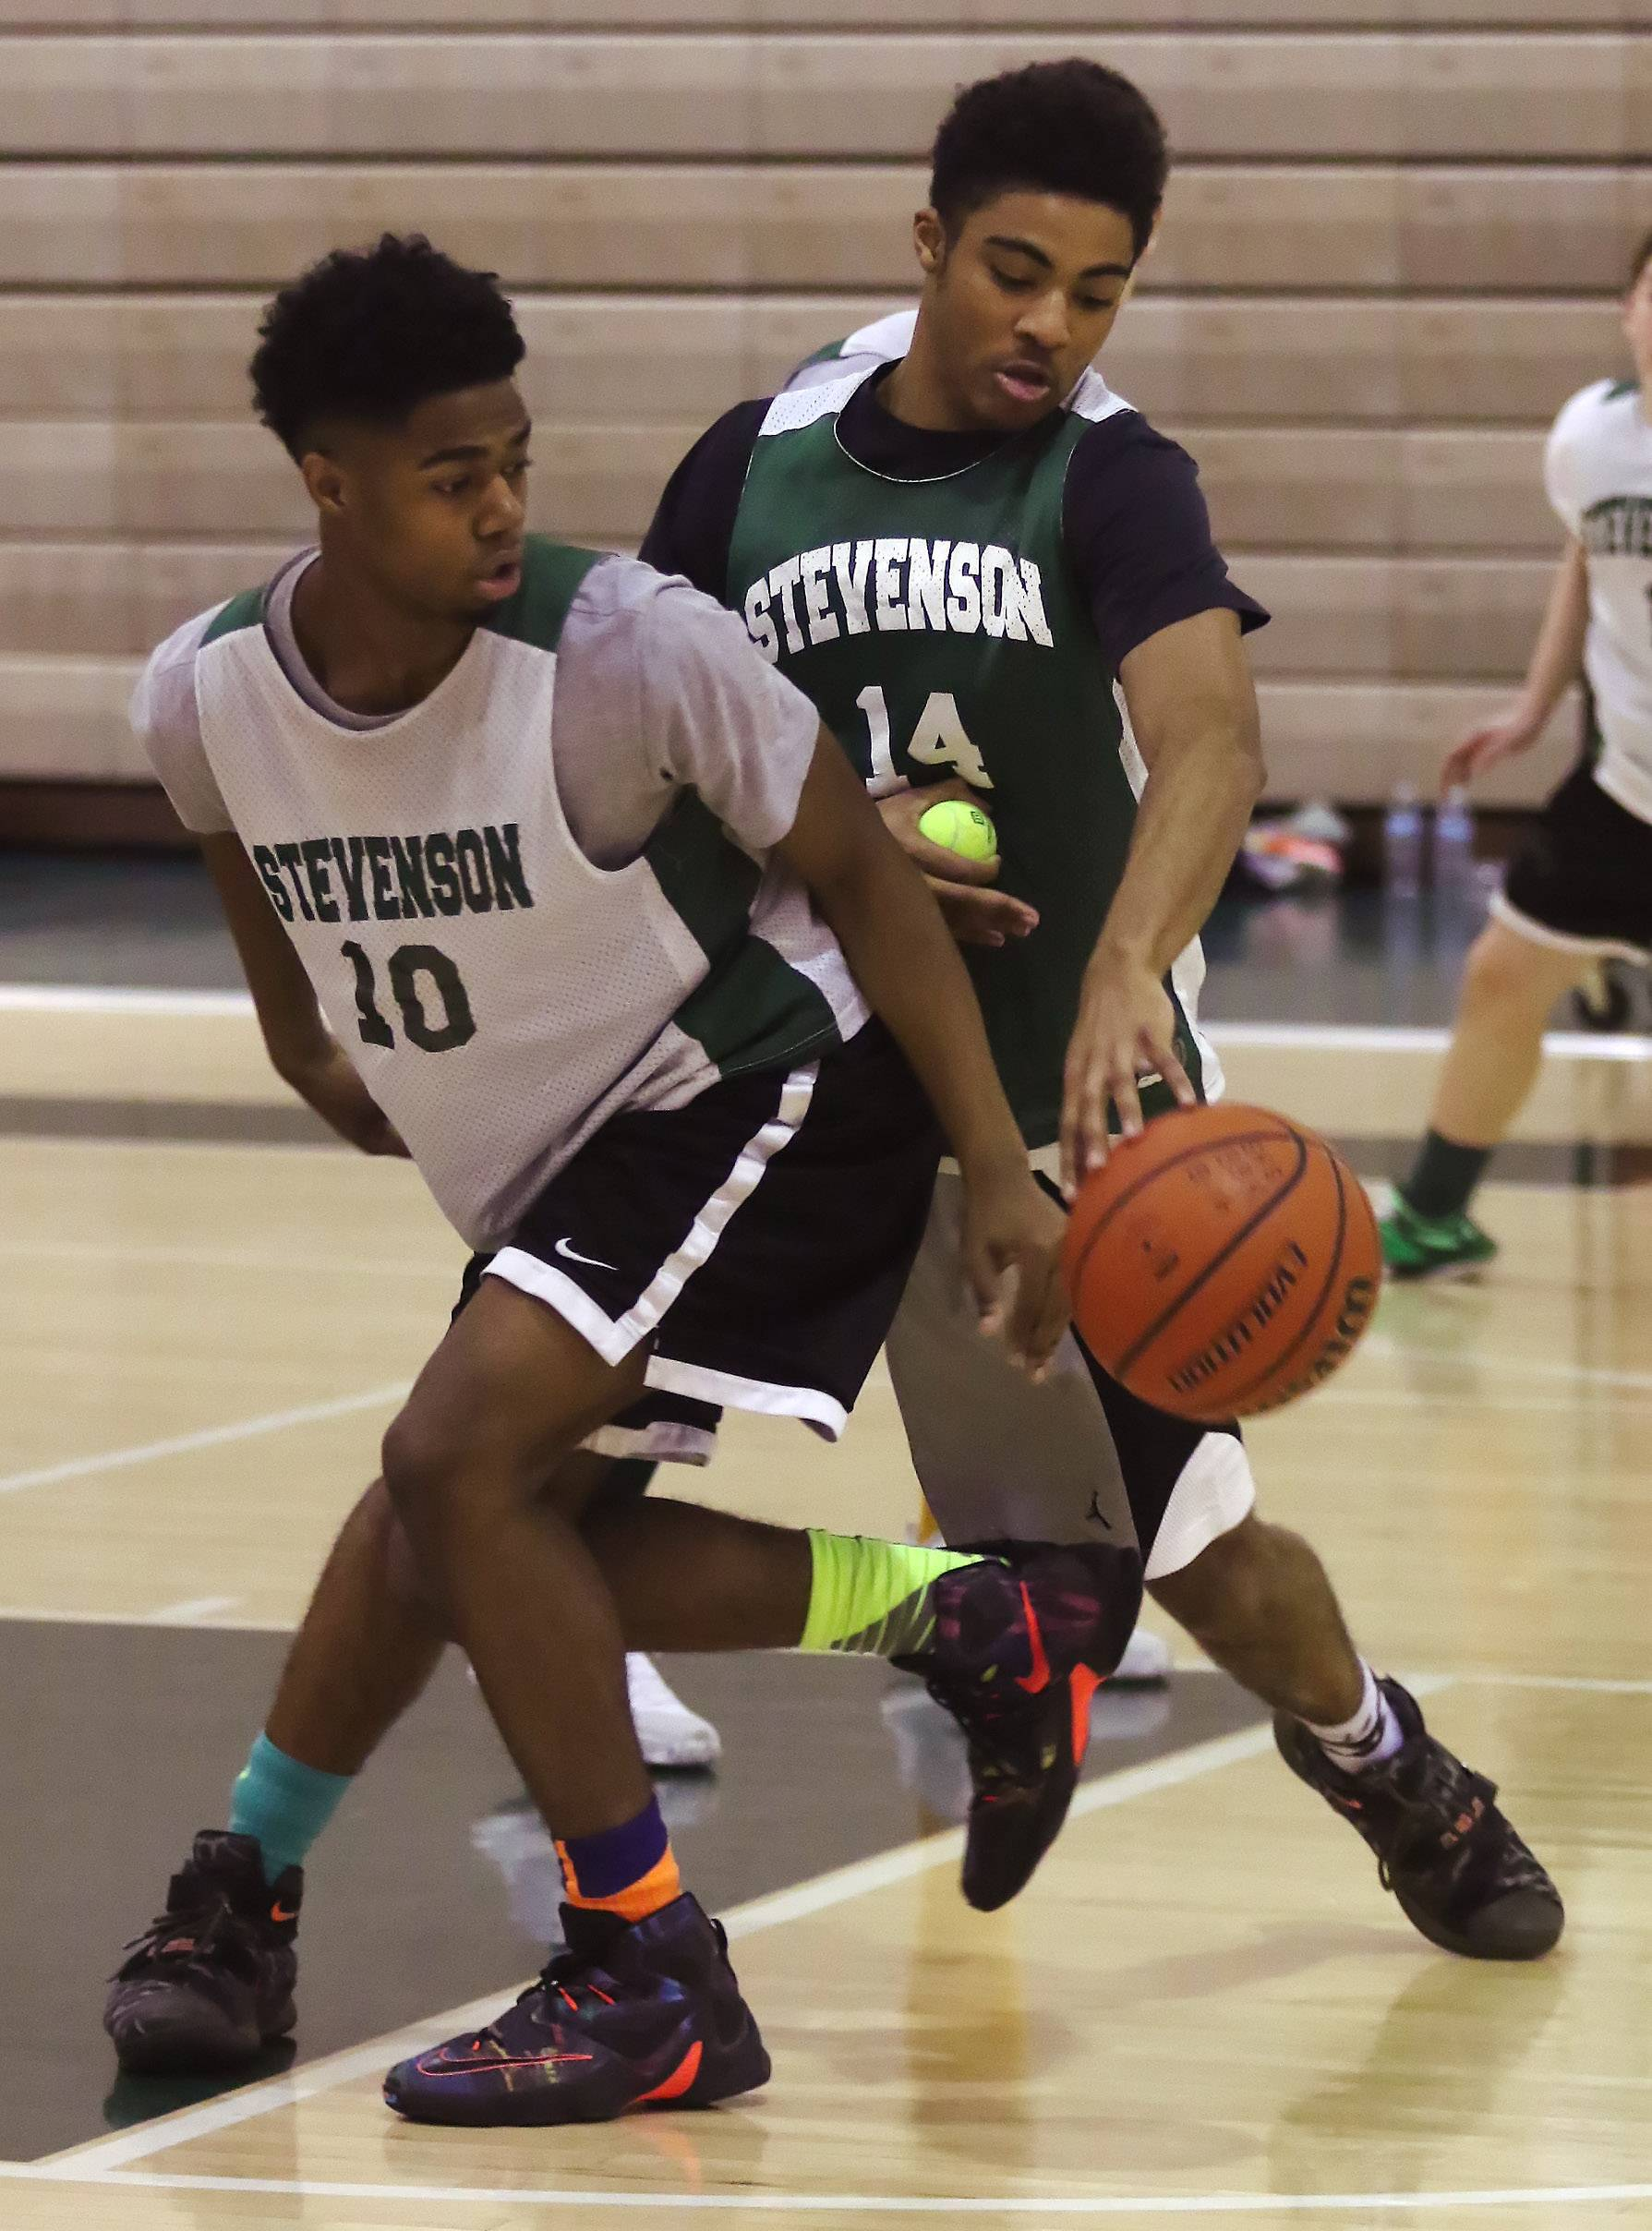 Stevenson's Willie Herenton (14) steals the ball from teammate Tyrek Washington (10) during Patriots practice Thursday.